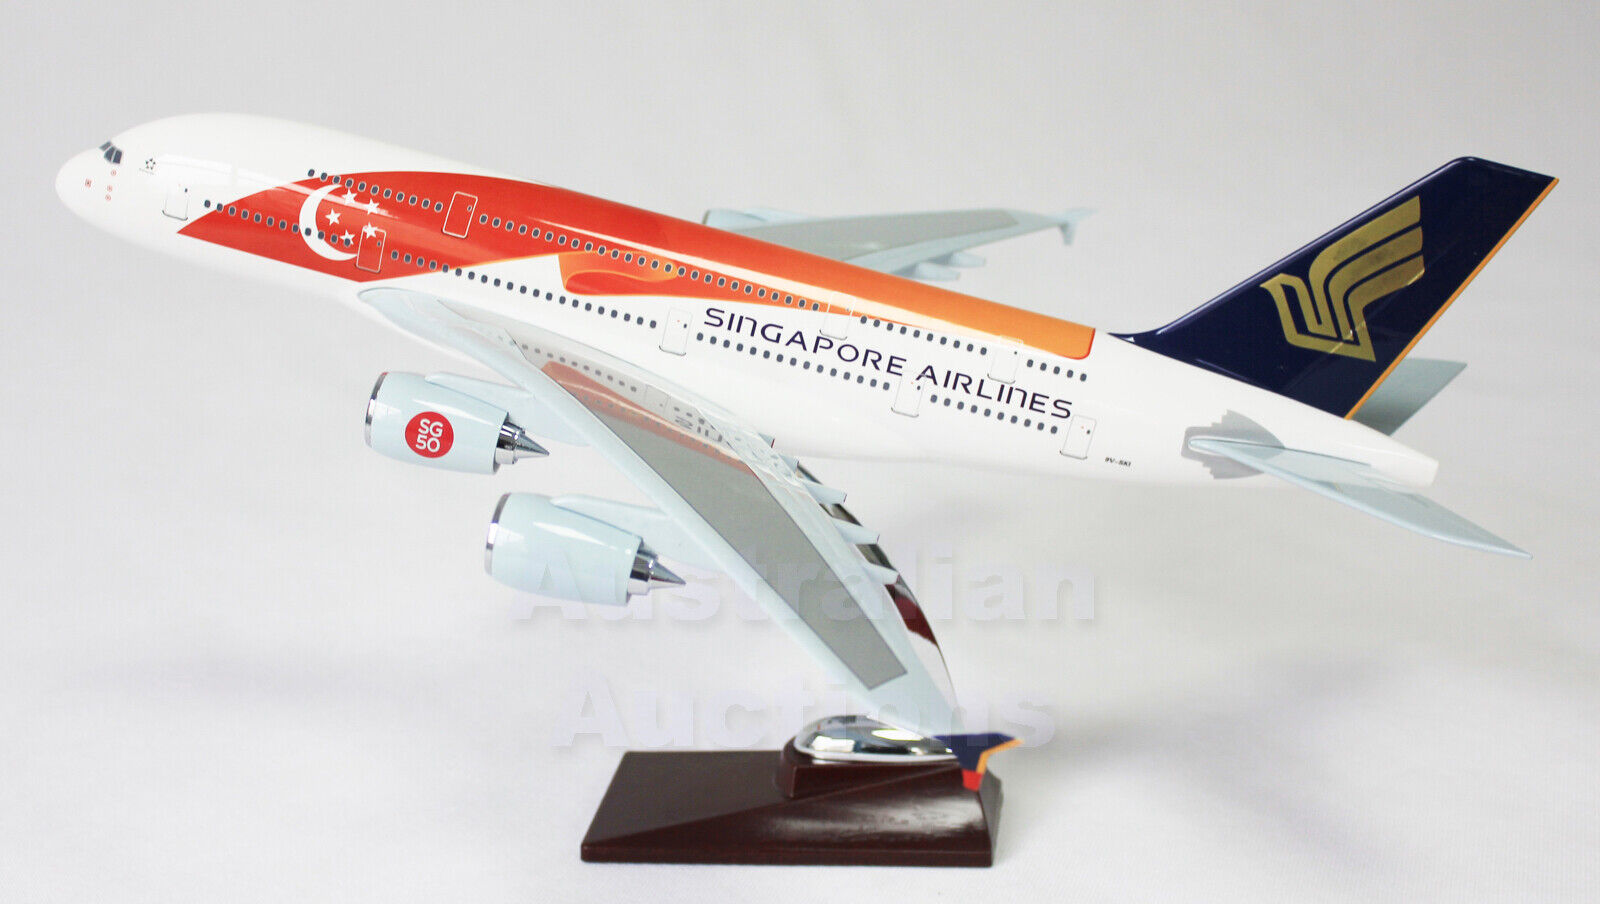 SINGAPORE AIRWAYS 50th Anniversary A380 LARGE PLANE MODEL APX 47cm SOLID RESIN